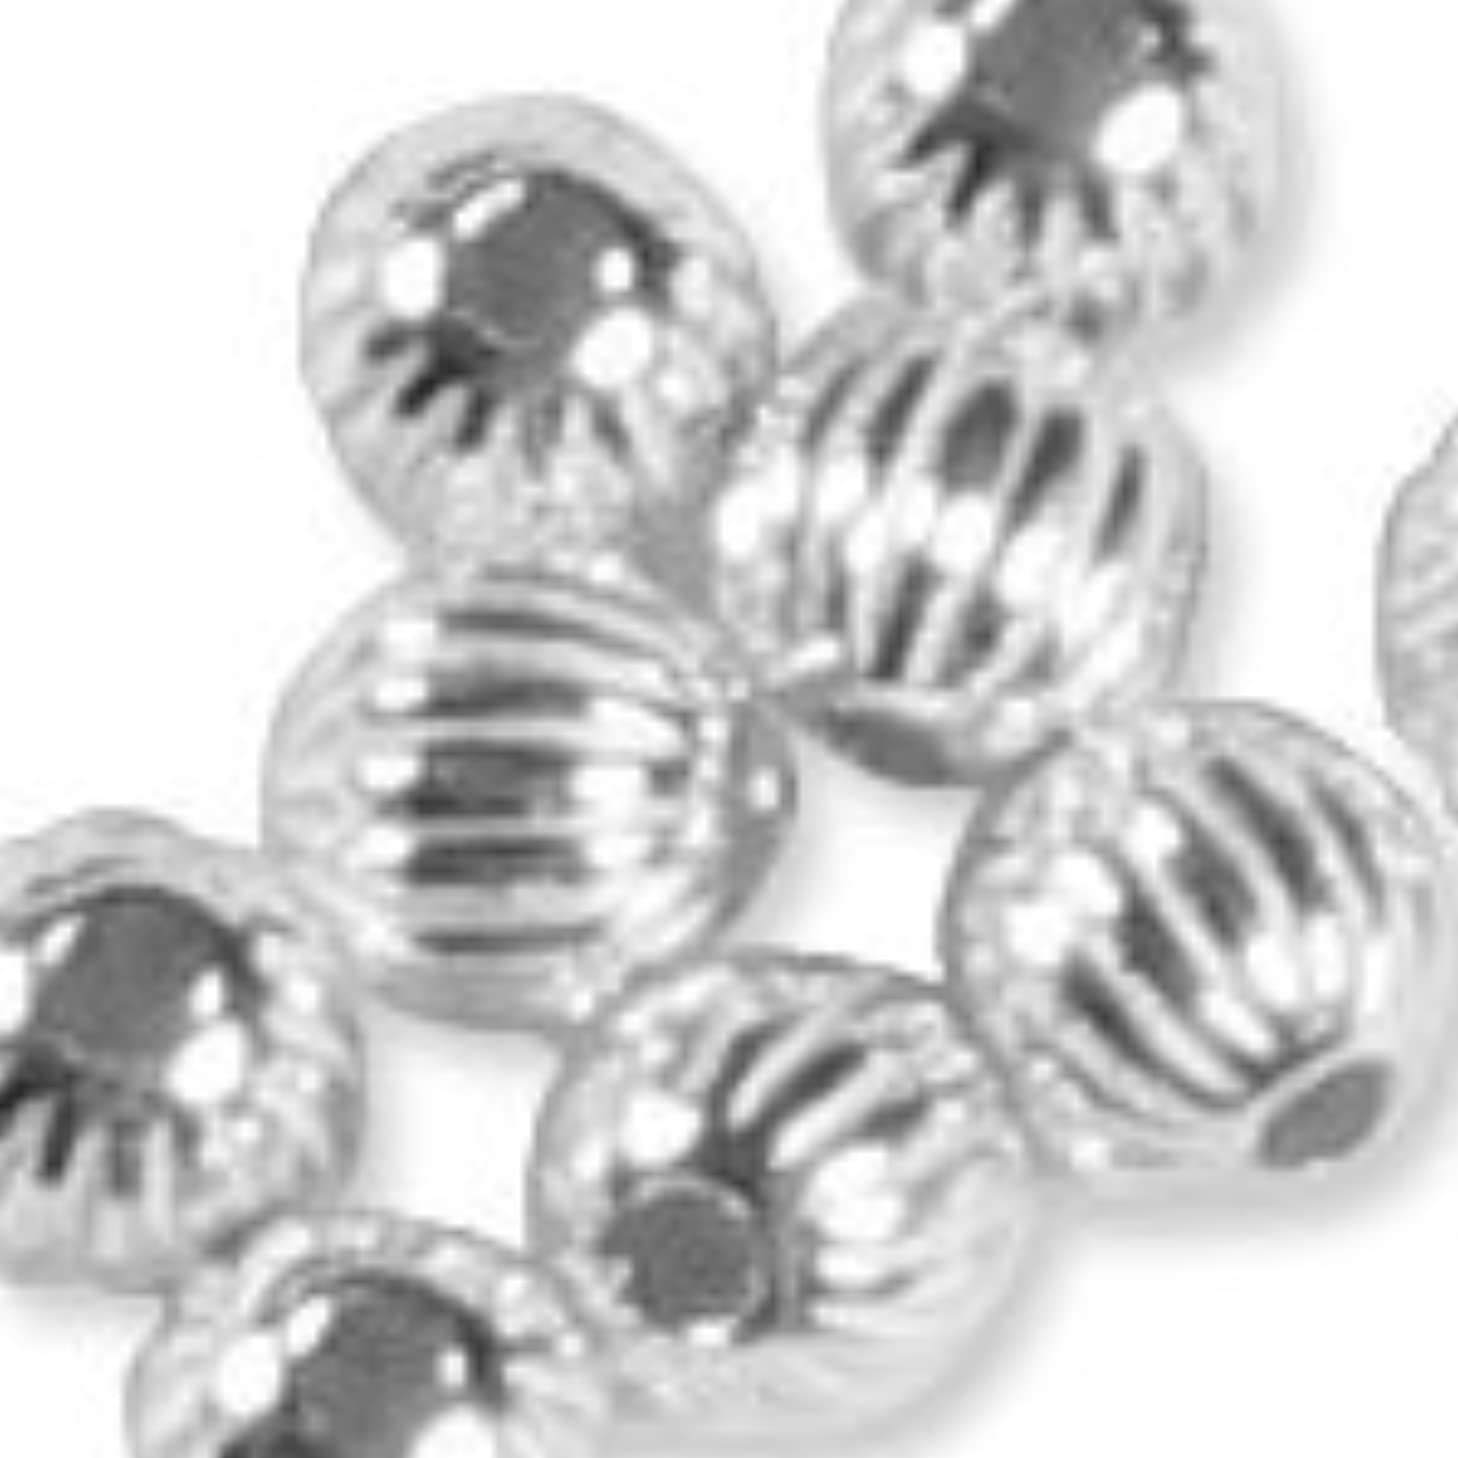 4mm Sterling Silver Round Beads